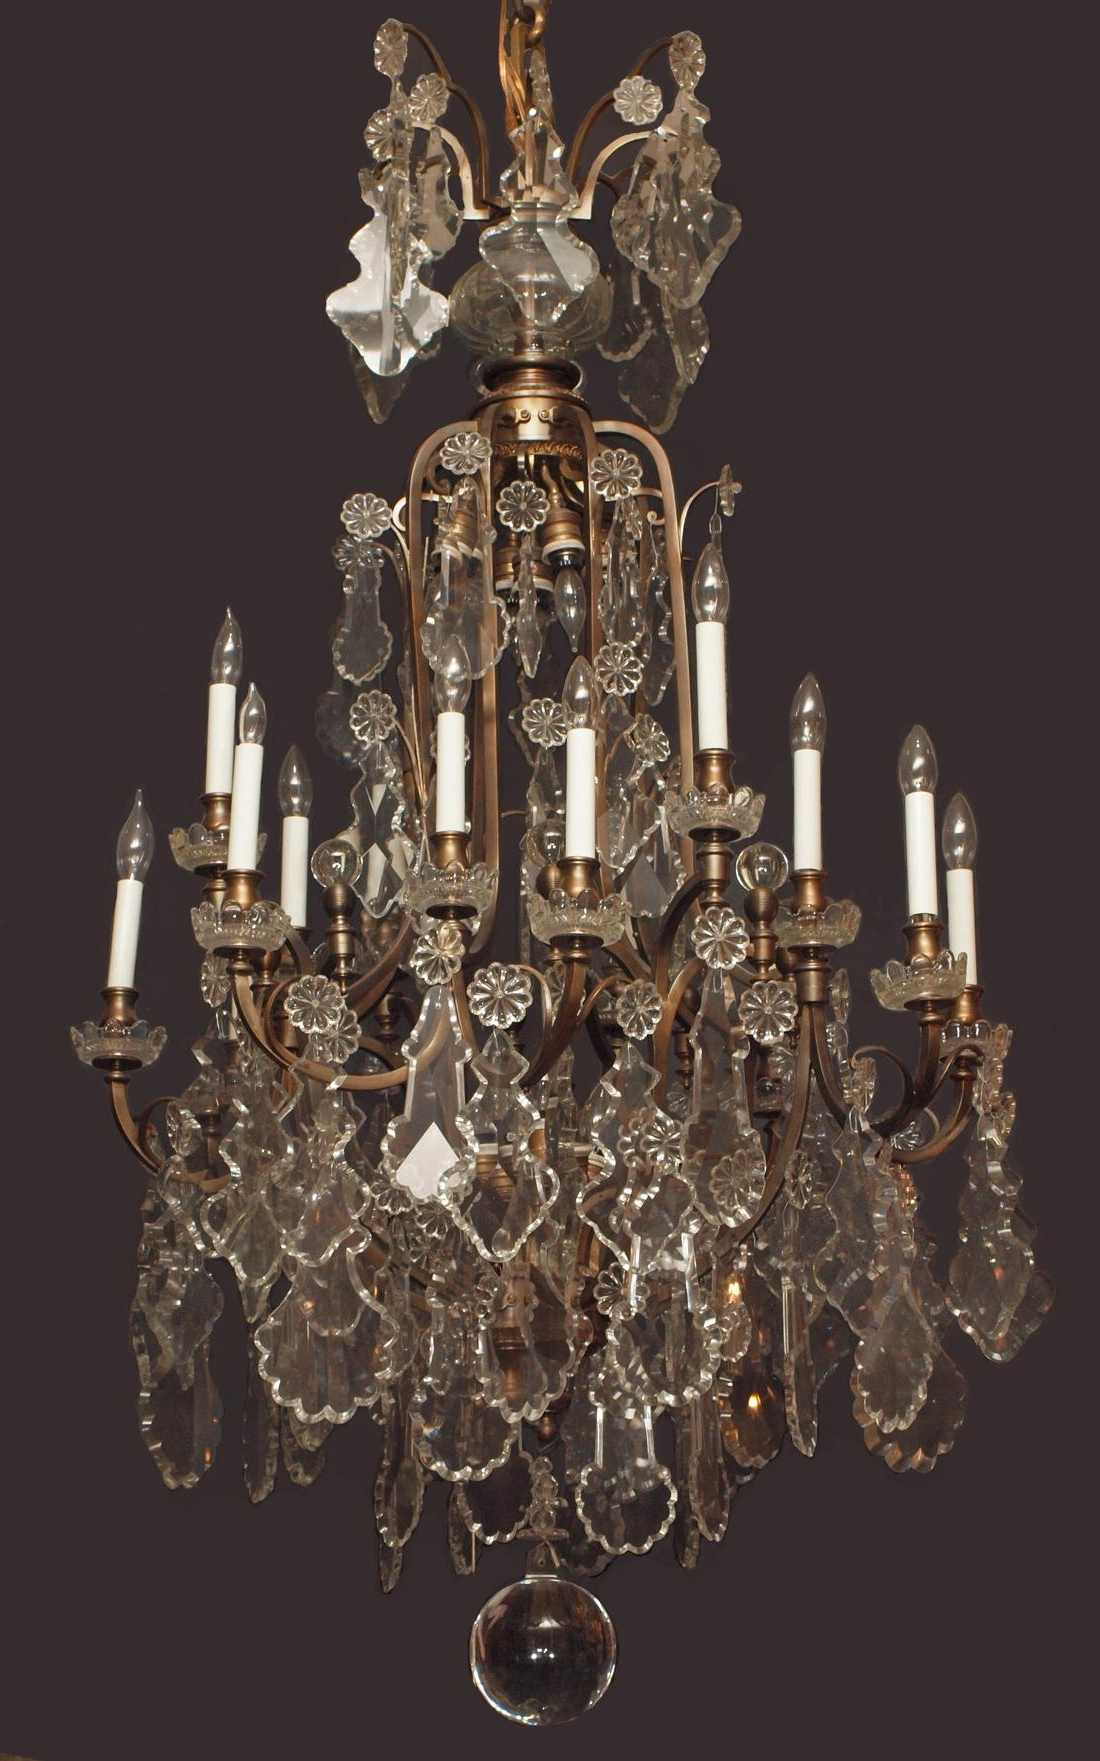 Newest Giant Chandeliers Pertaining To Giant Crystal Chandelier – Chandelier Designs (View 11 of 20)